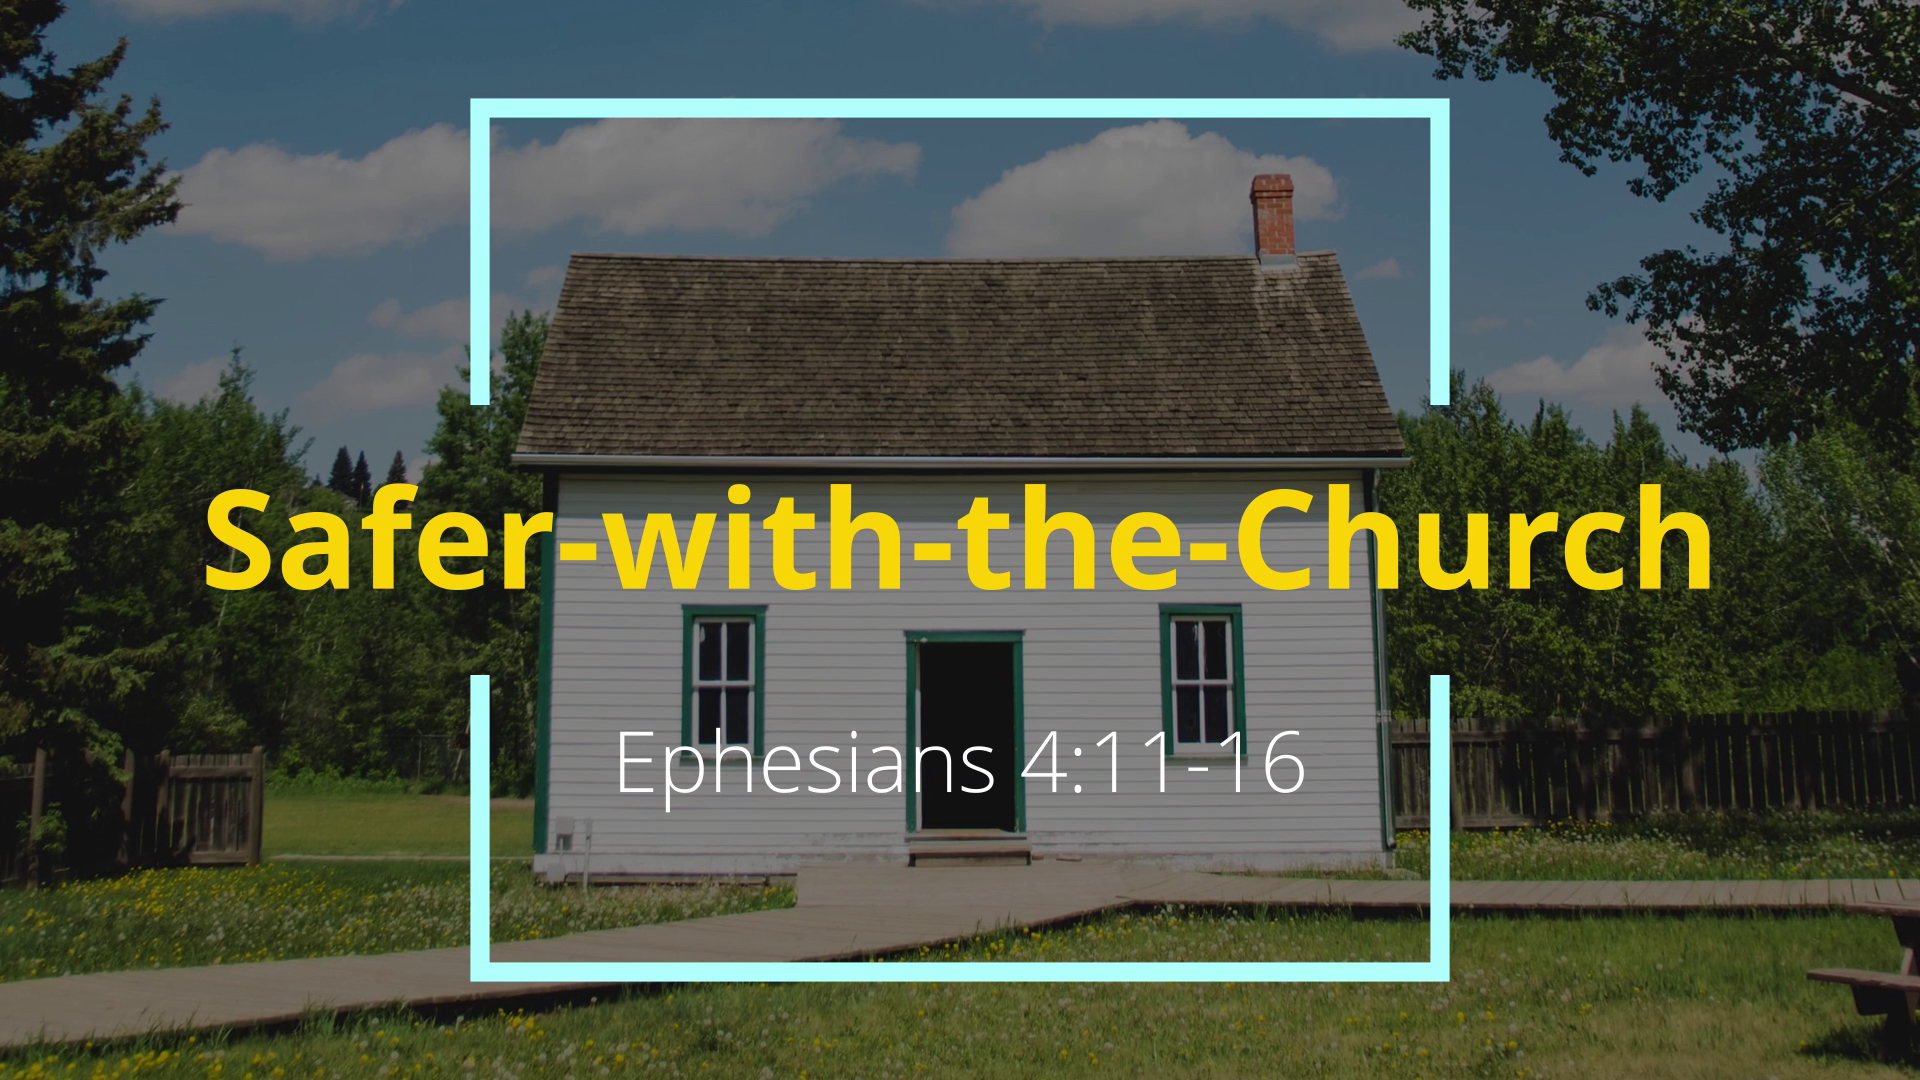 Safer-with-the-Church (Ephesians 4:11-16)